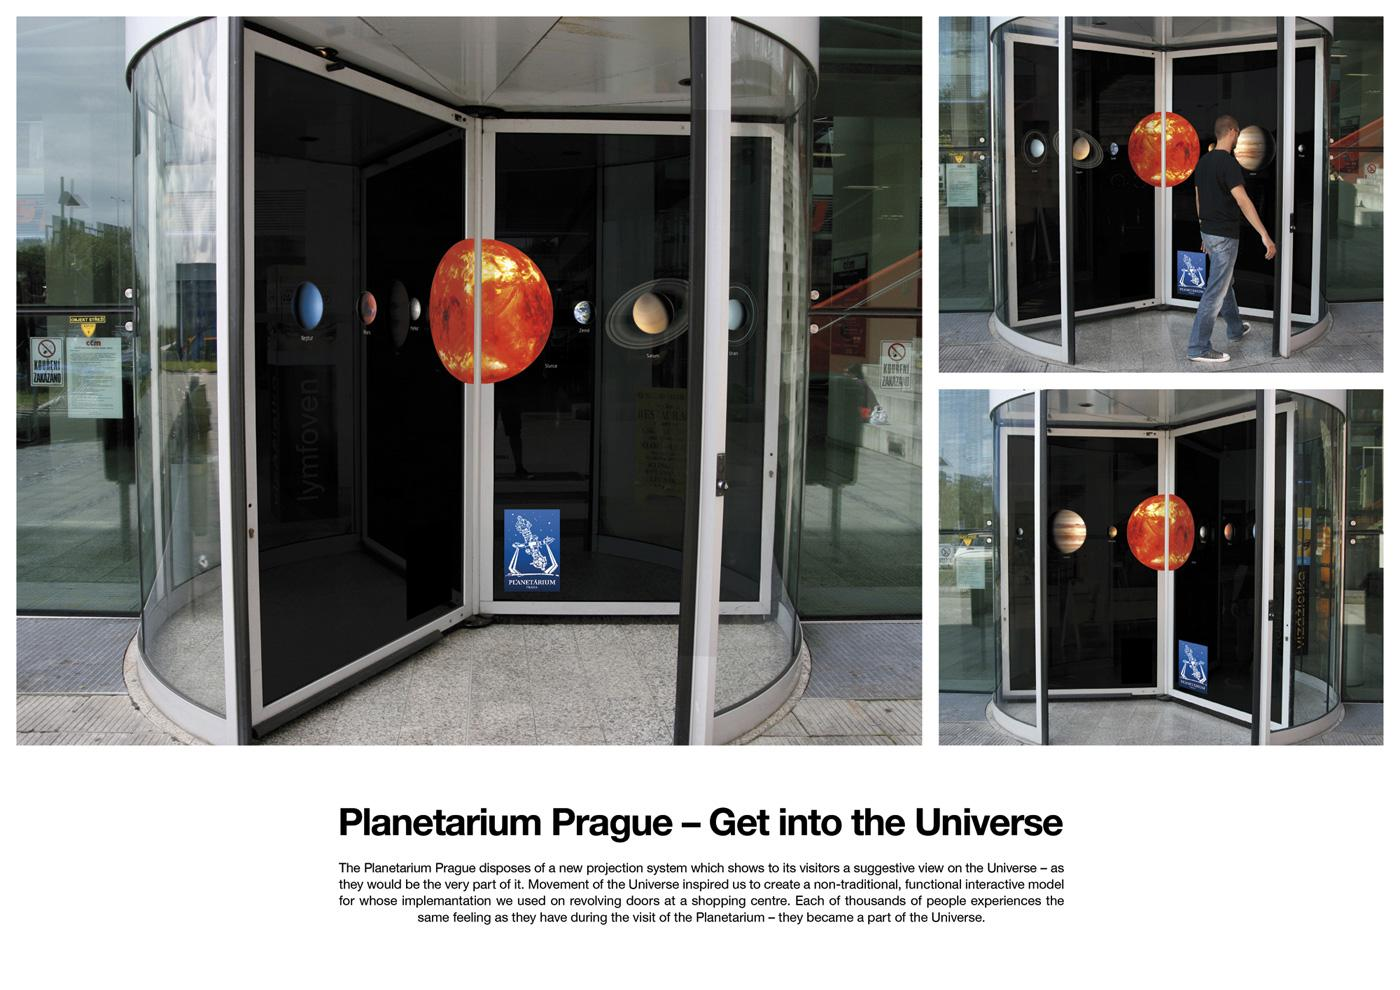 Planetarium Prague Ambient Ad -  Get into the Universe